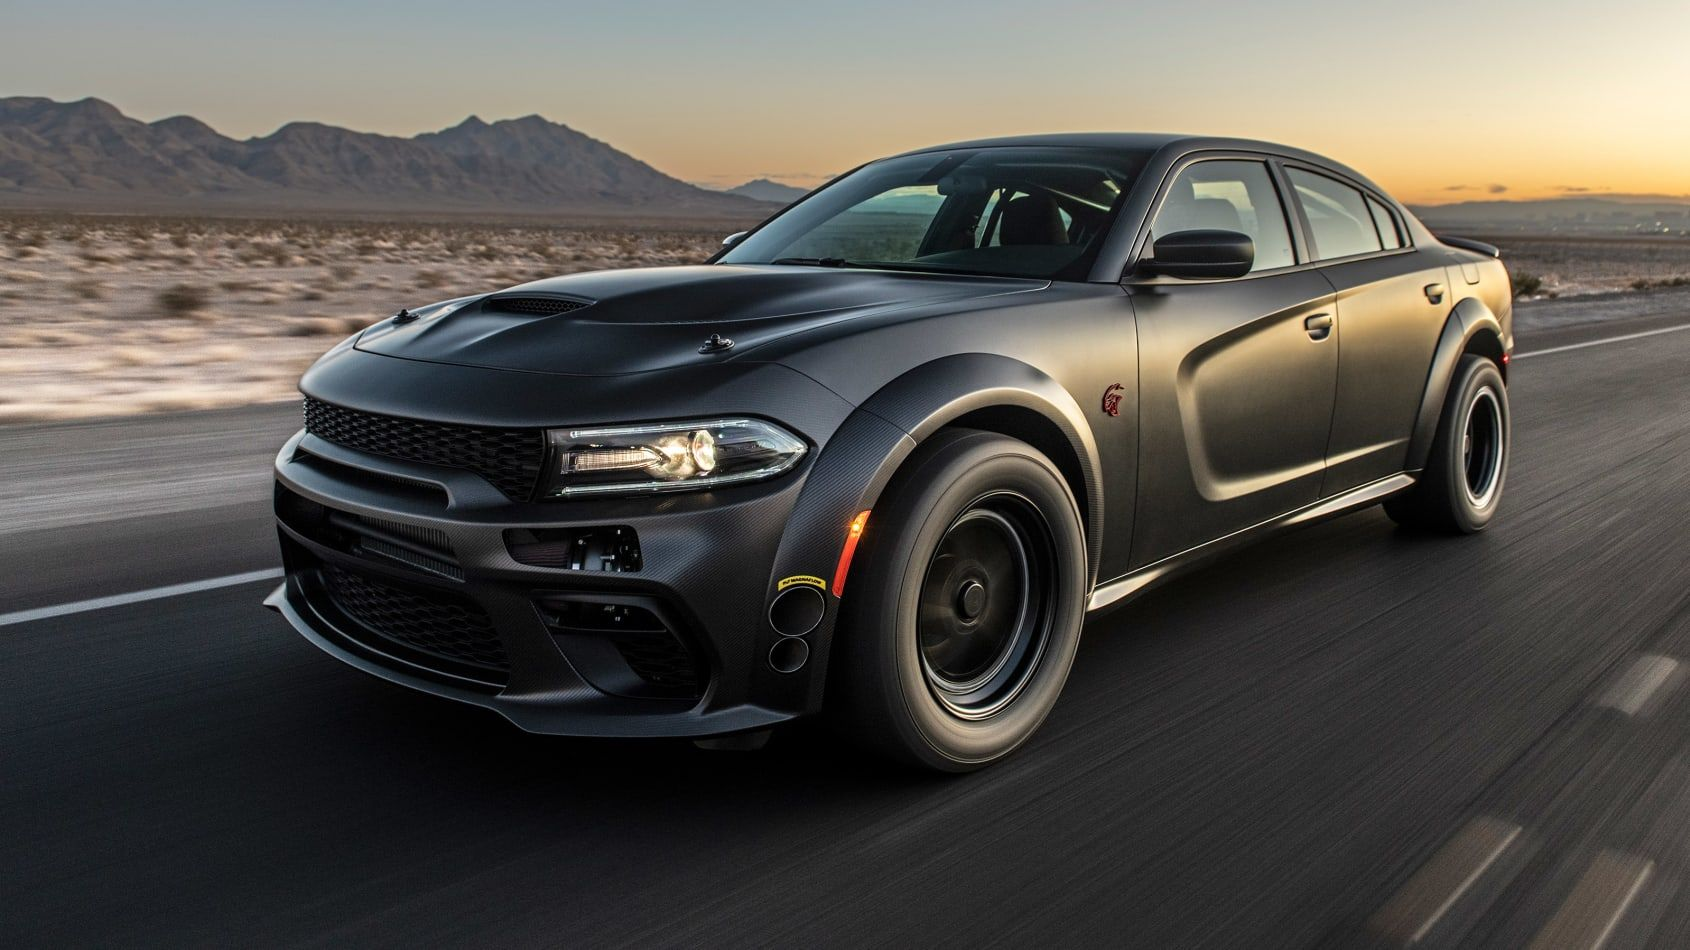 The Brilliant Minds At Speedkore Alongside Magnaflow And Gp Tuners Have Come Up With This Bats T Crazy Dodge Charger That 8217 S In 2020 Dodge Charger Dodge Awd